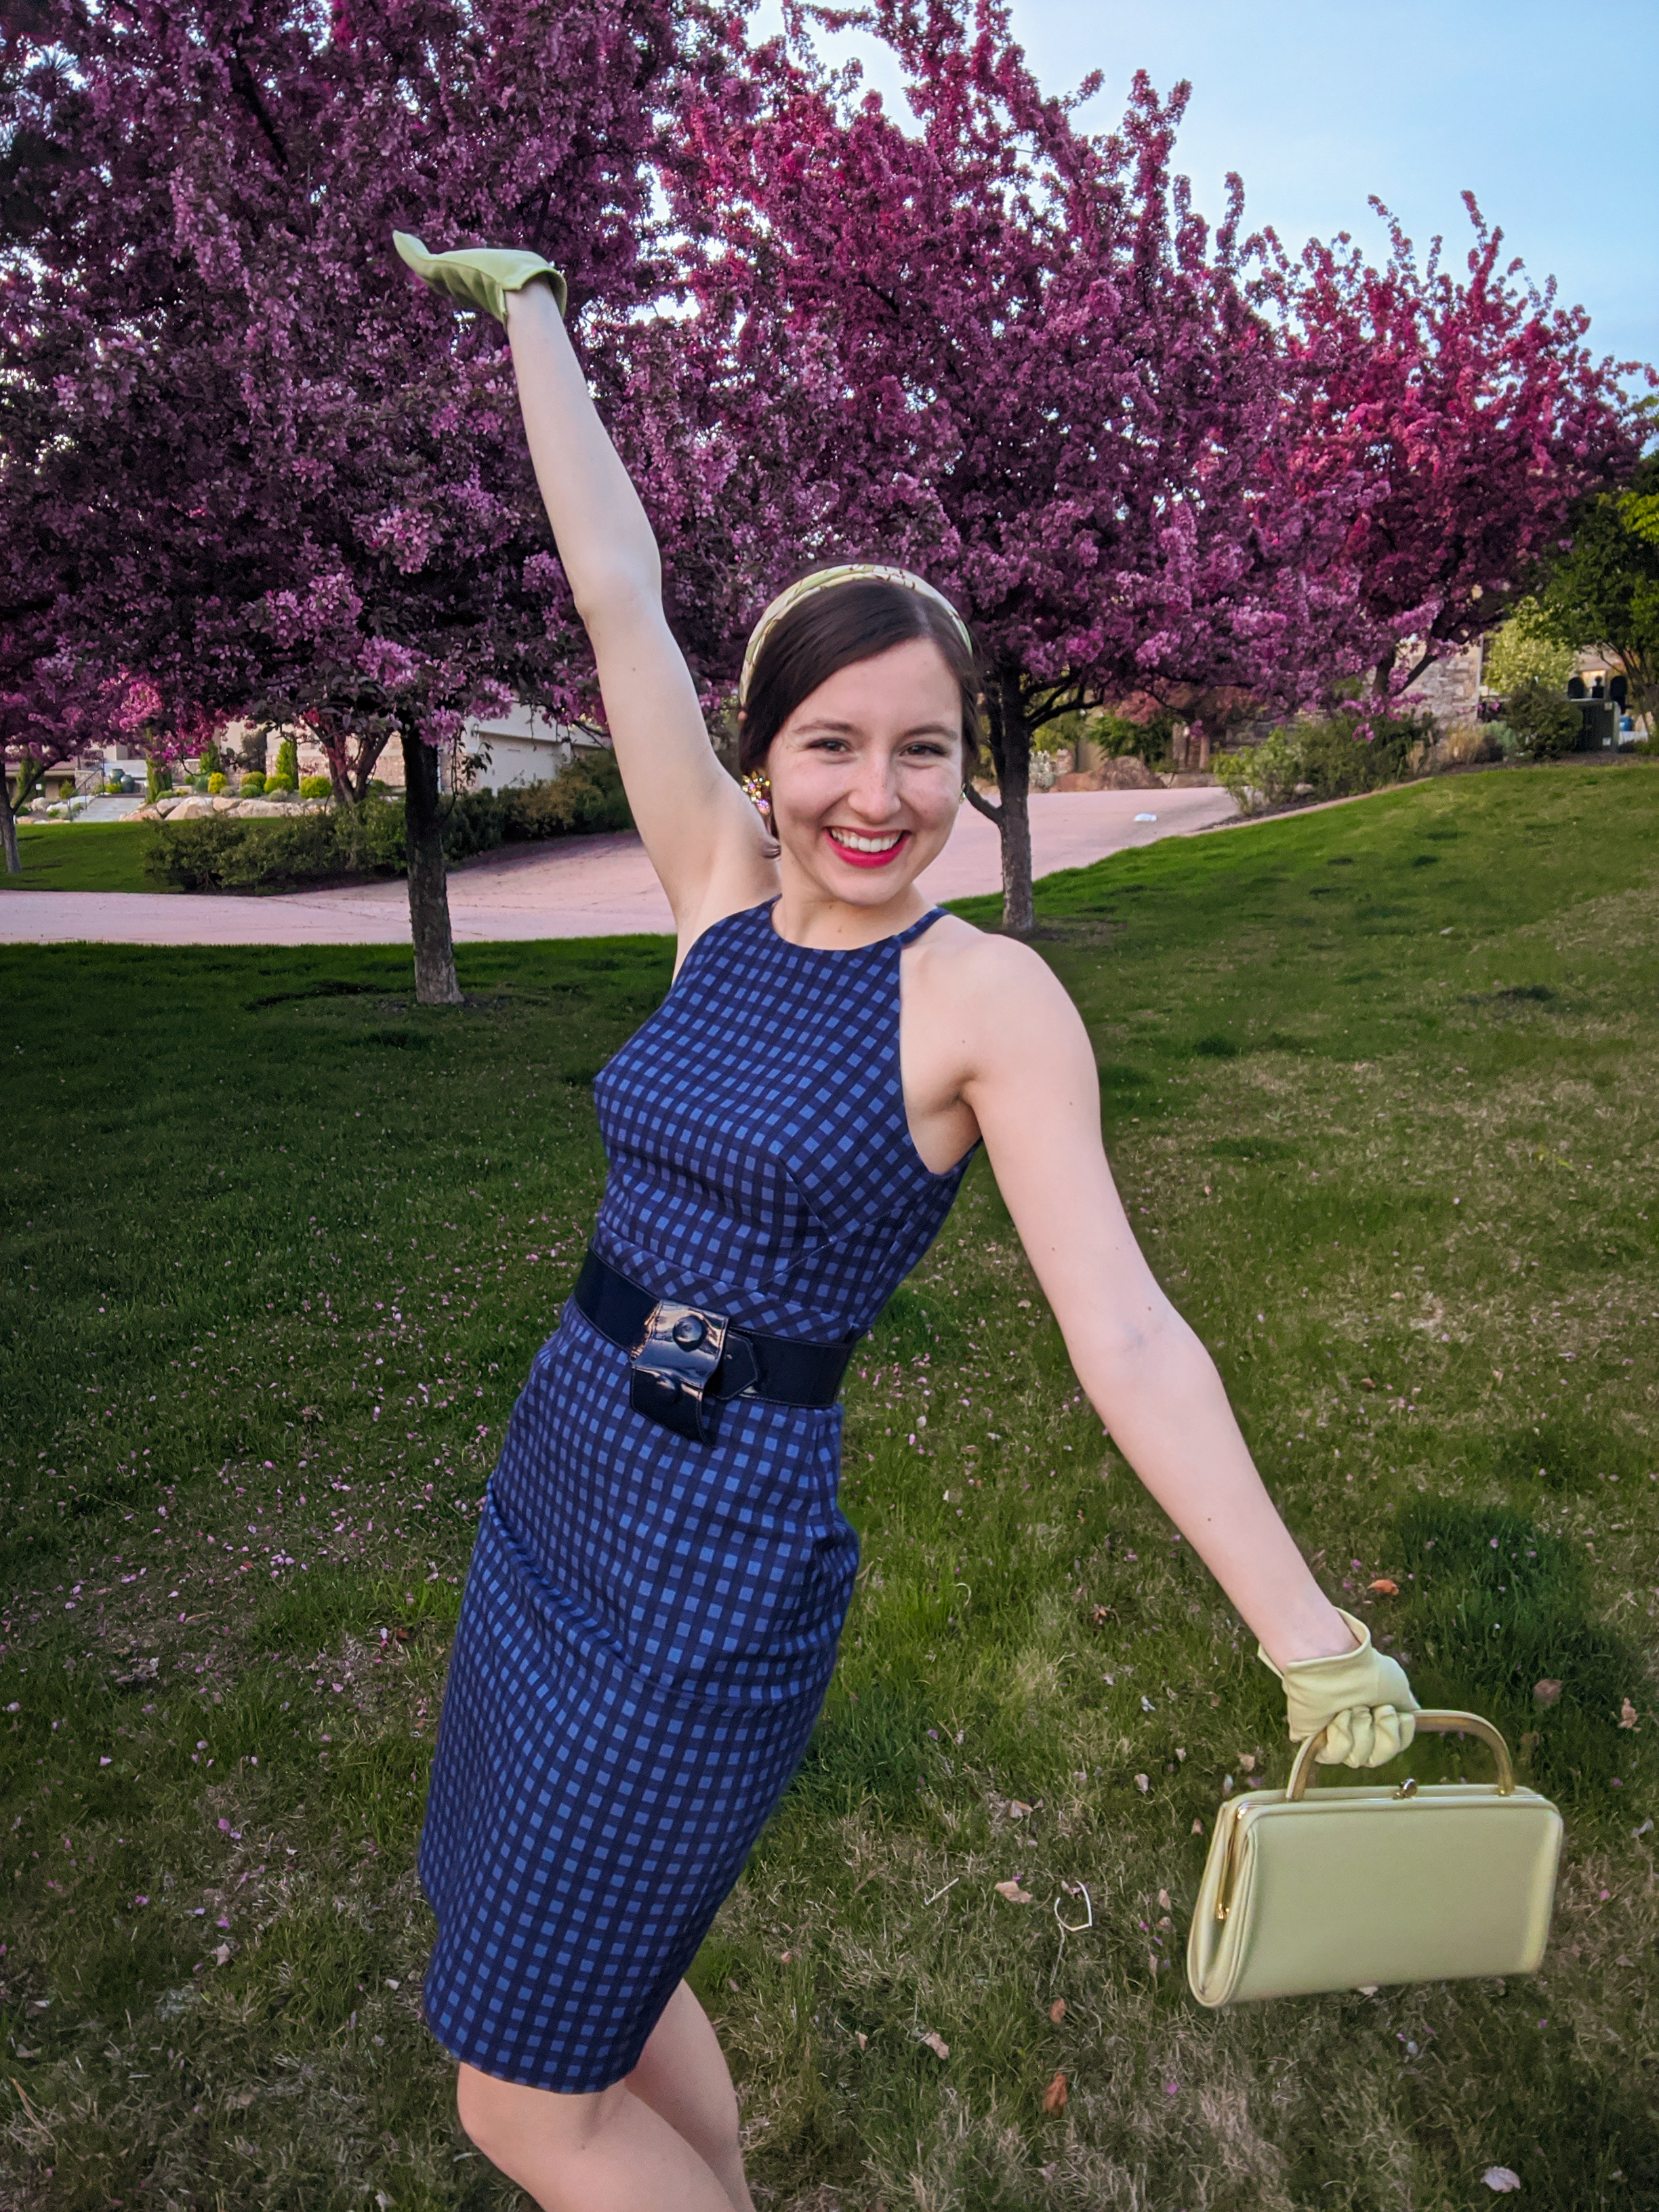 1950s style, 1960s style, green purse, green gloves